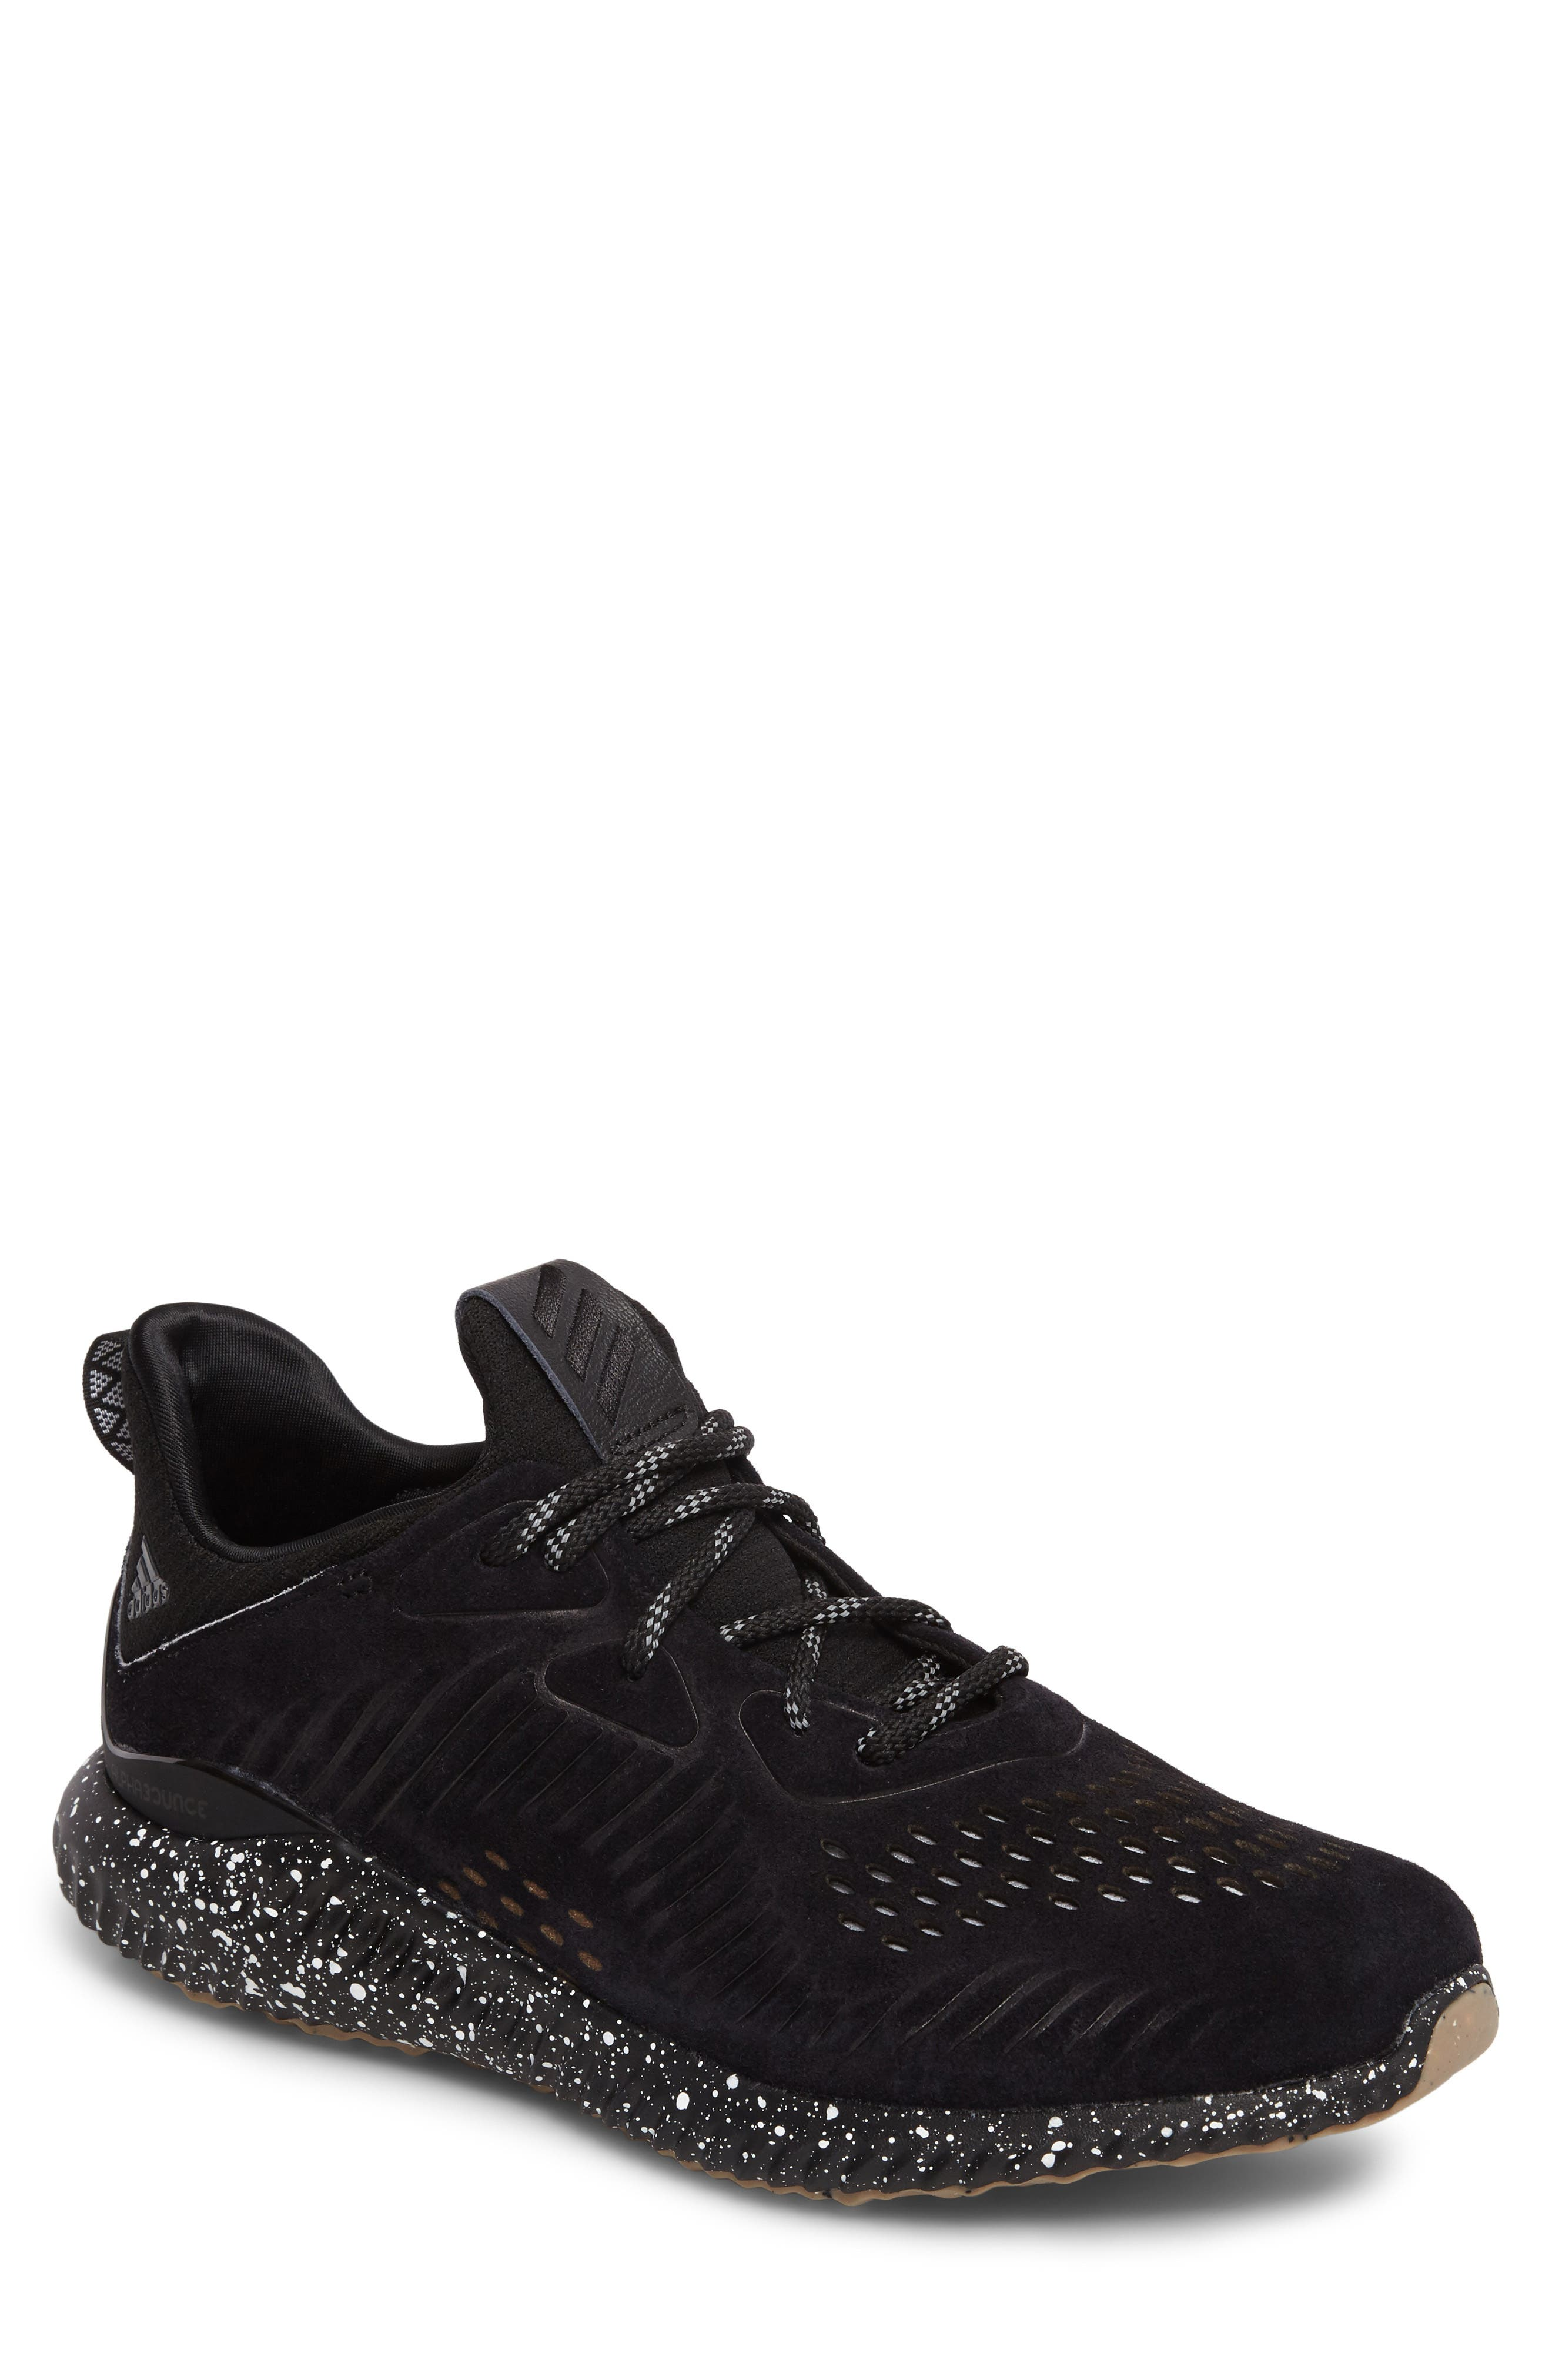 Alternate Image 1 Selected - adidas AlphaBounce LEA Running Shoe (Men)